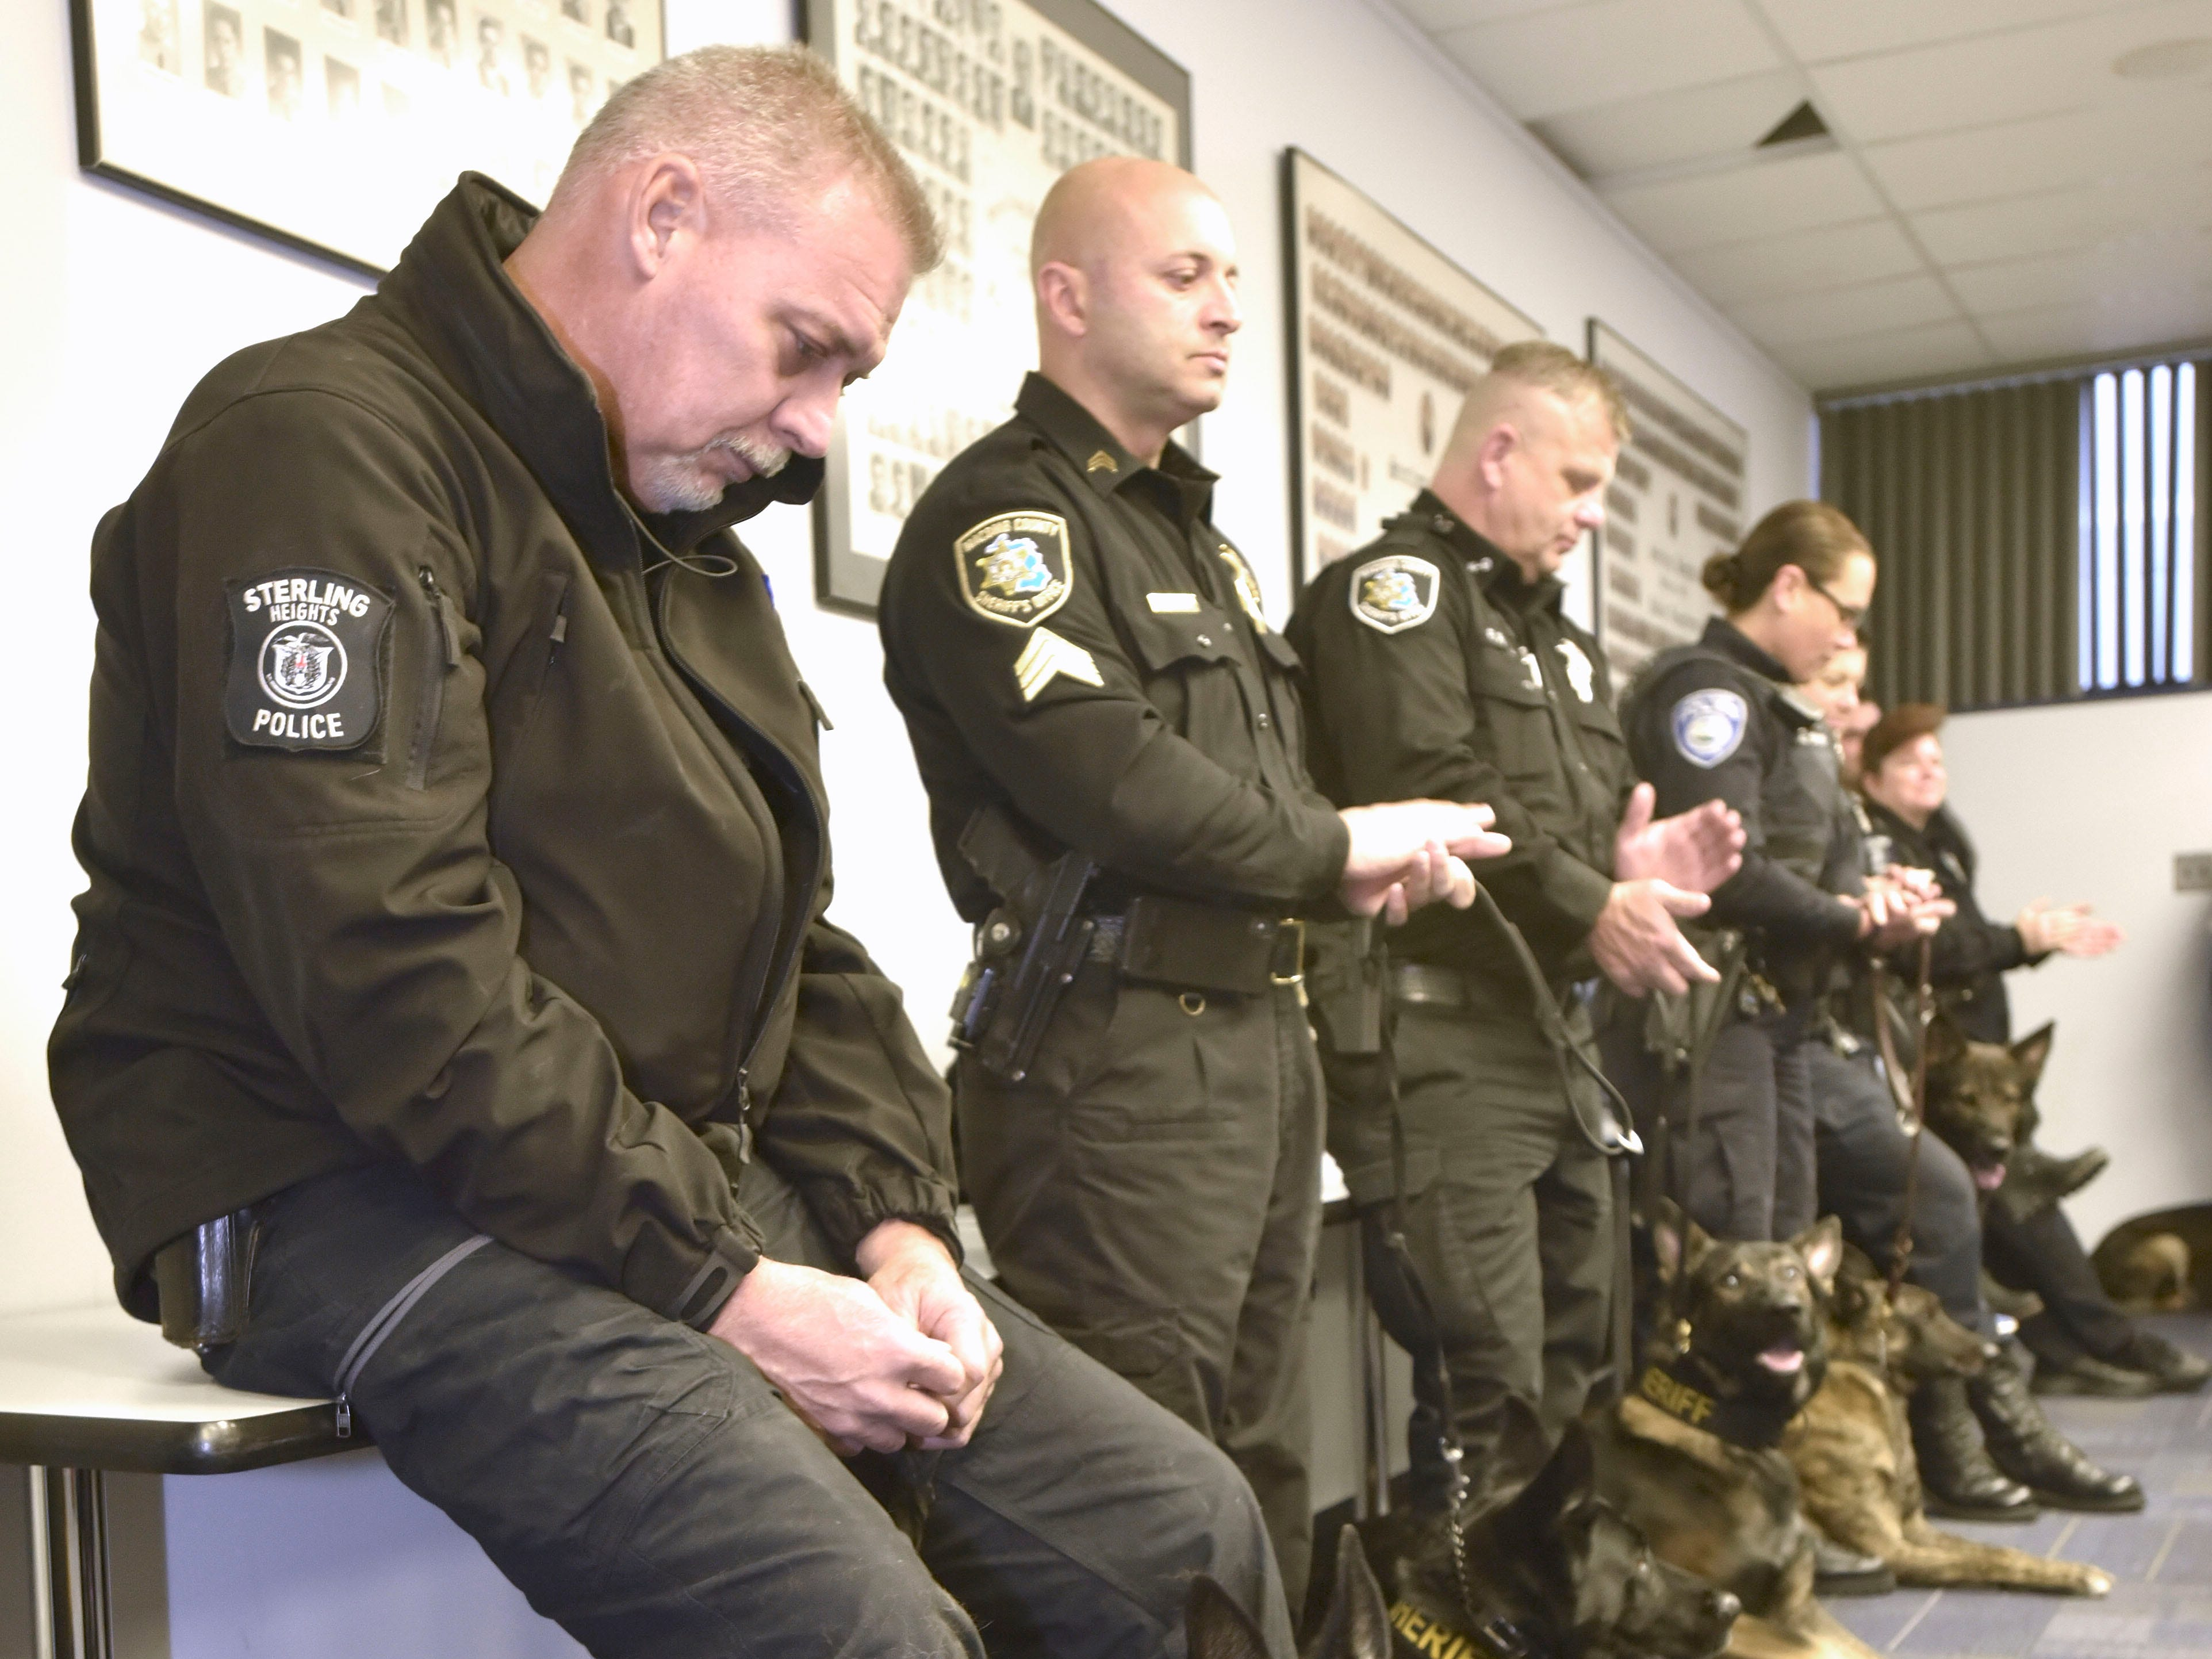 Sterling Heights Police K-9 officer Rich Heins tries to keep his emotions in check during the retirement ceremony for his police dog, Chase. Other department K-9 officers attended to show their respects at Sterling Heights Police Department, Friday, Nov. 16, 2018.